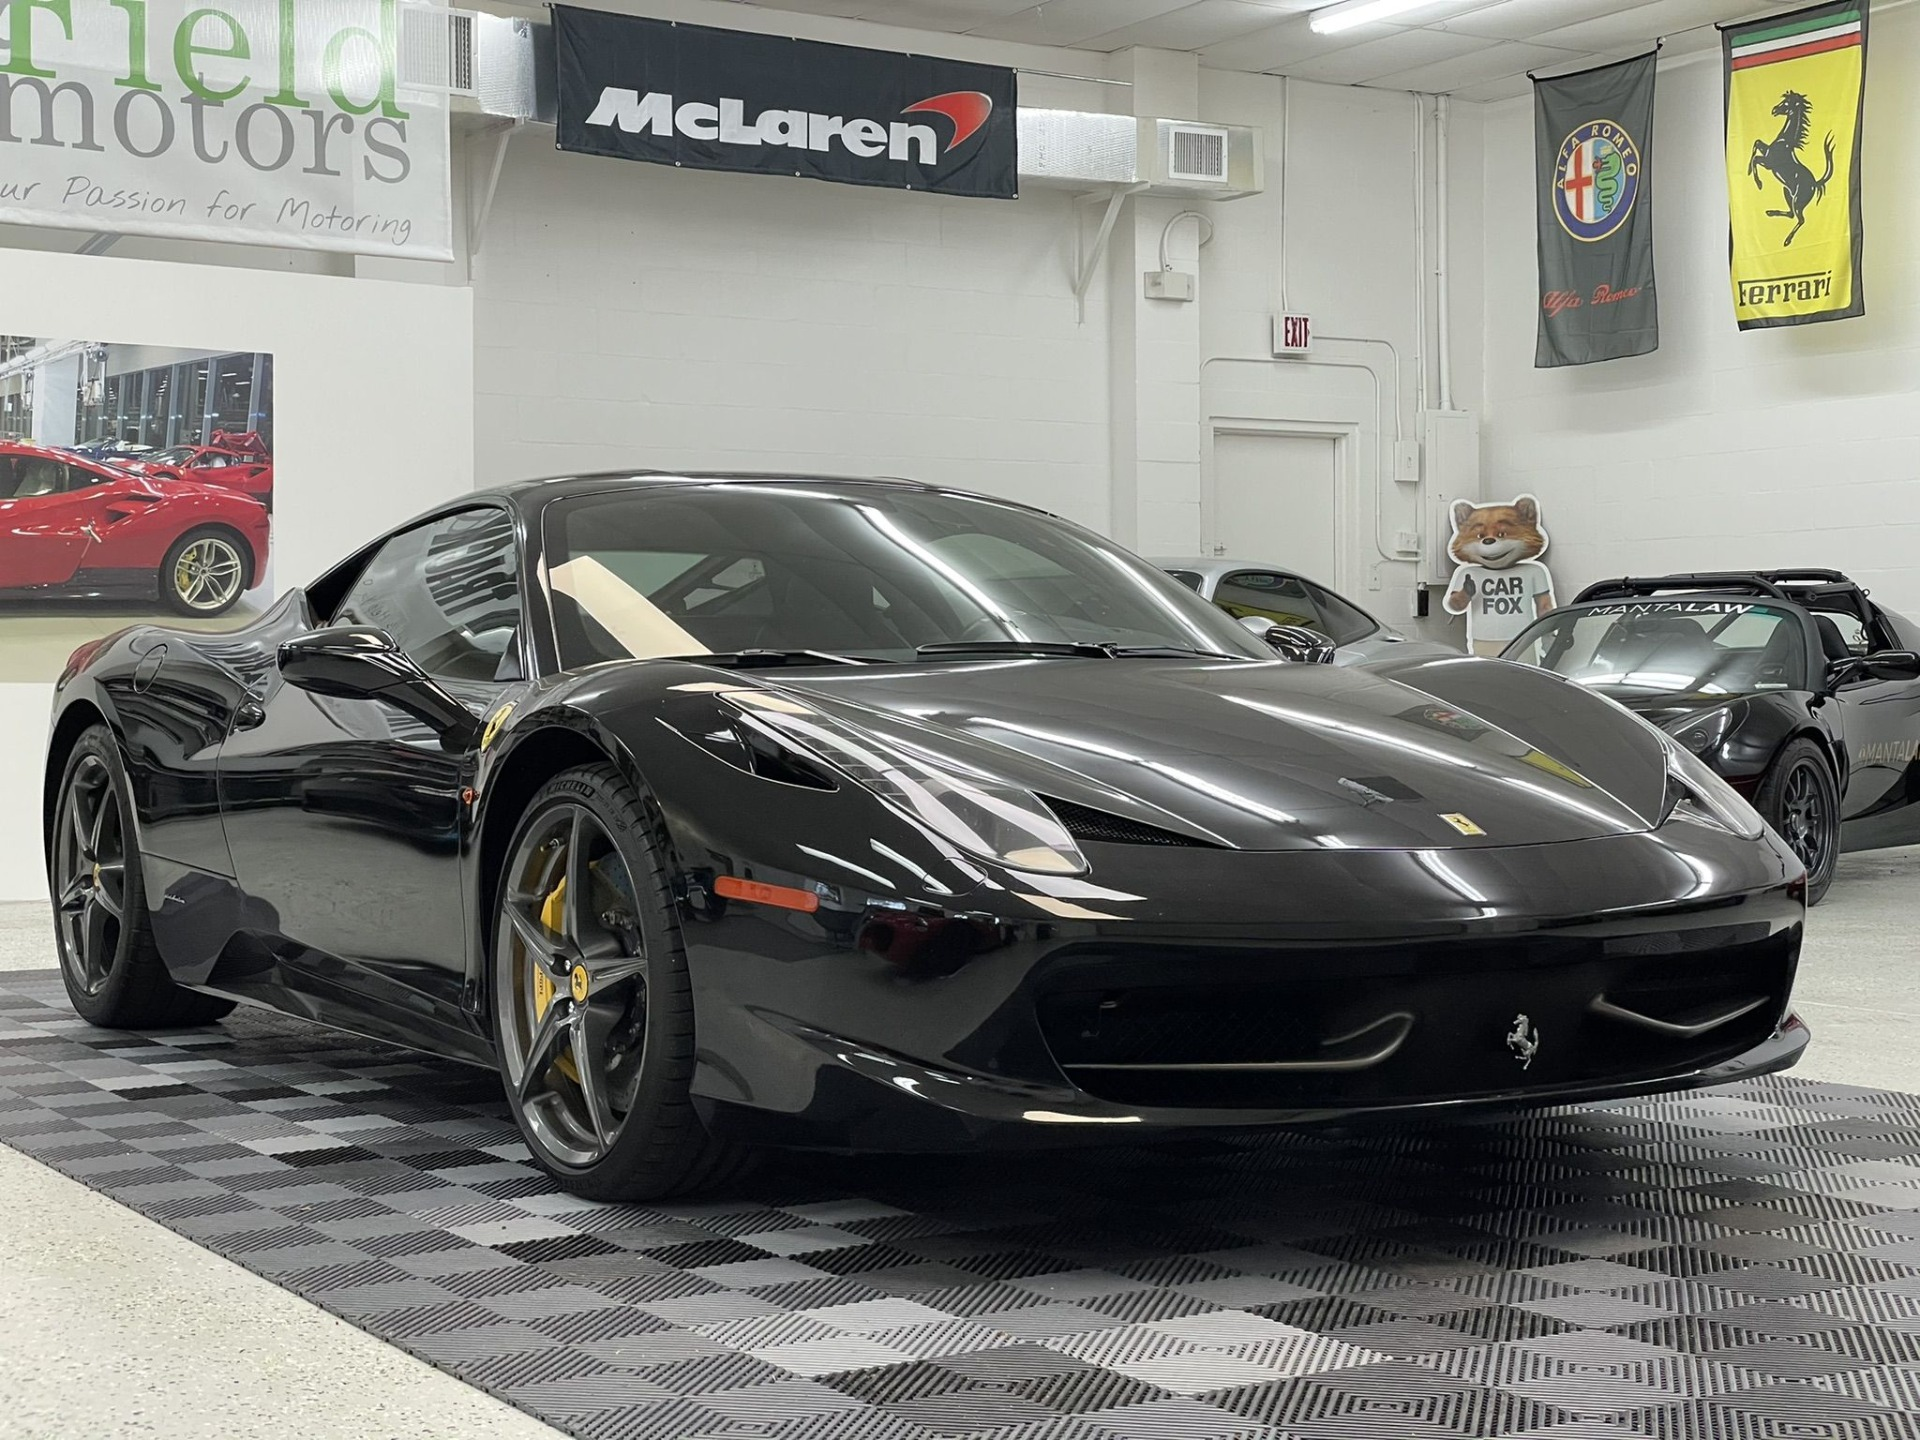 Used 2011 Ferrari 458 Italia Coupe 2D for sale $164,997 at Track and Field Motors in Safety Harbor FL